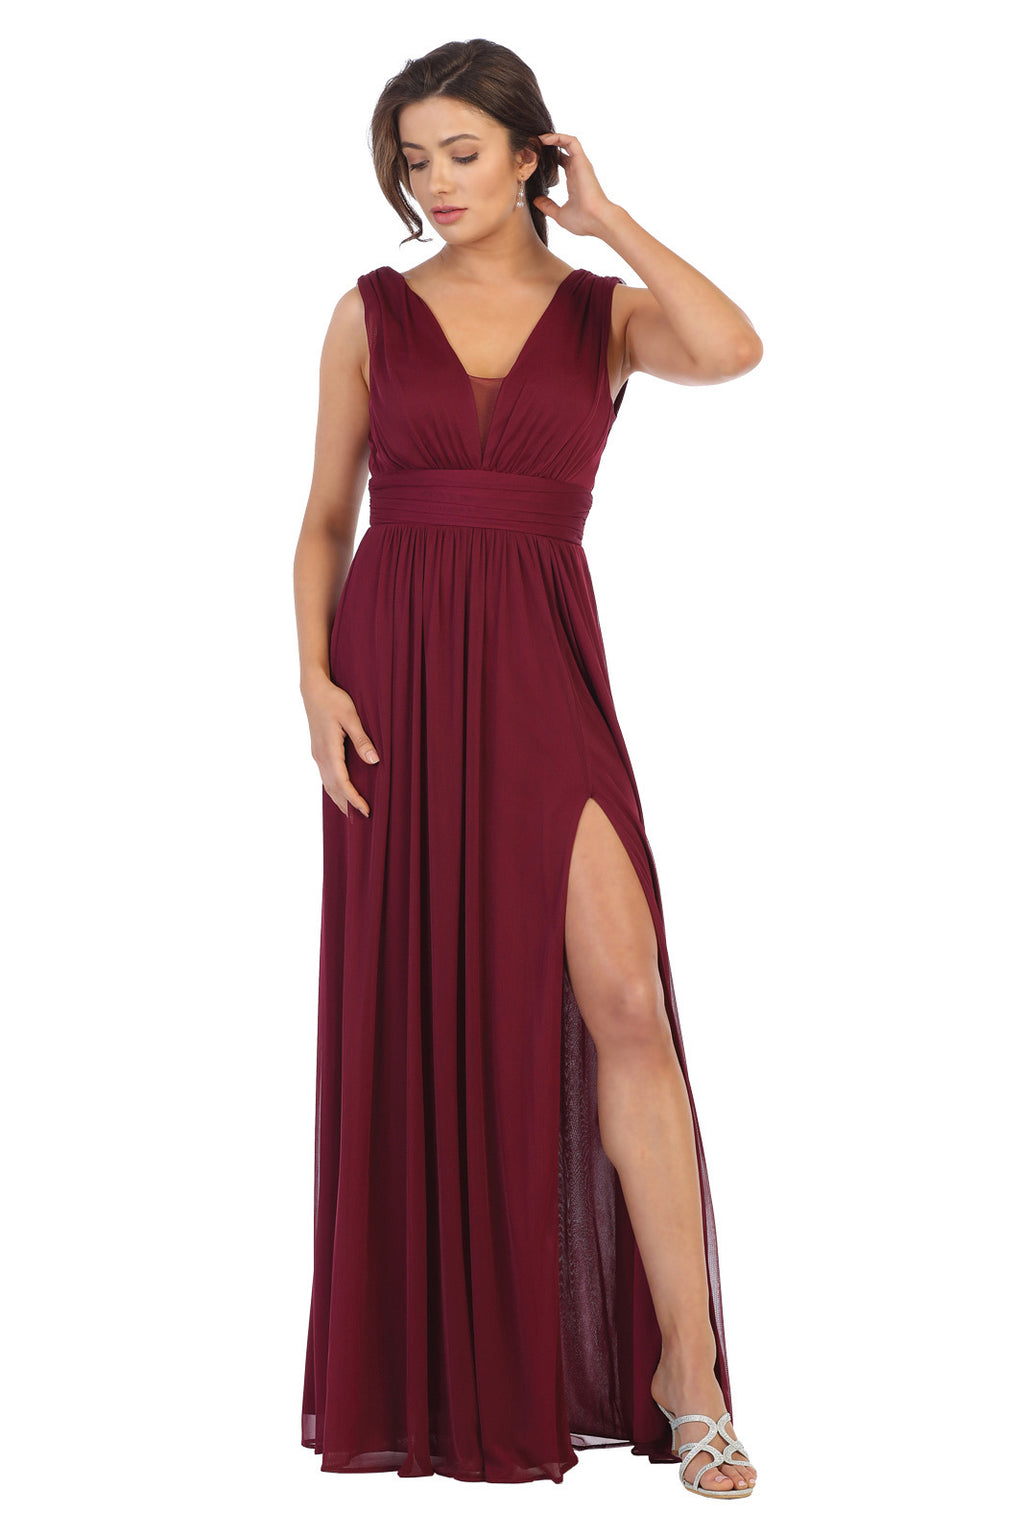 Bria Bella & Co. Burgundy Formal Gown